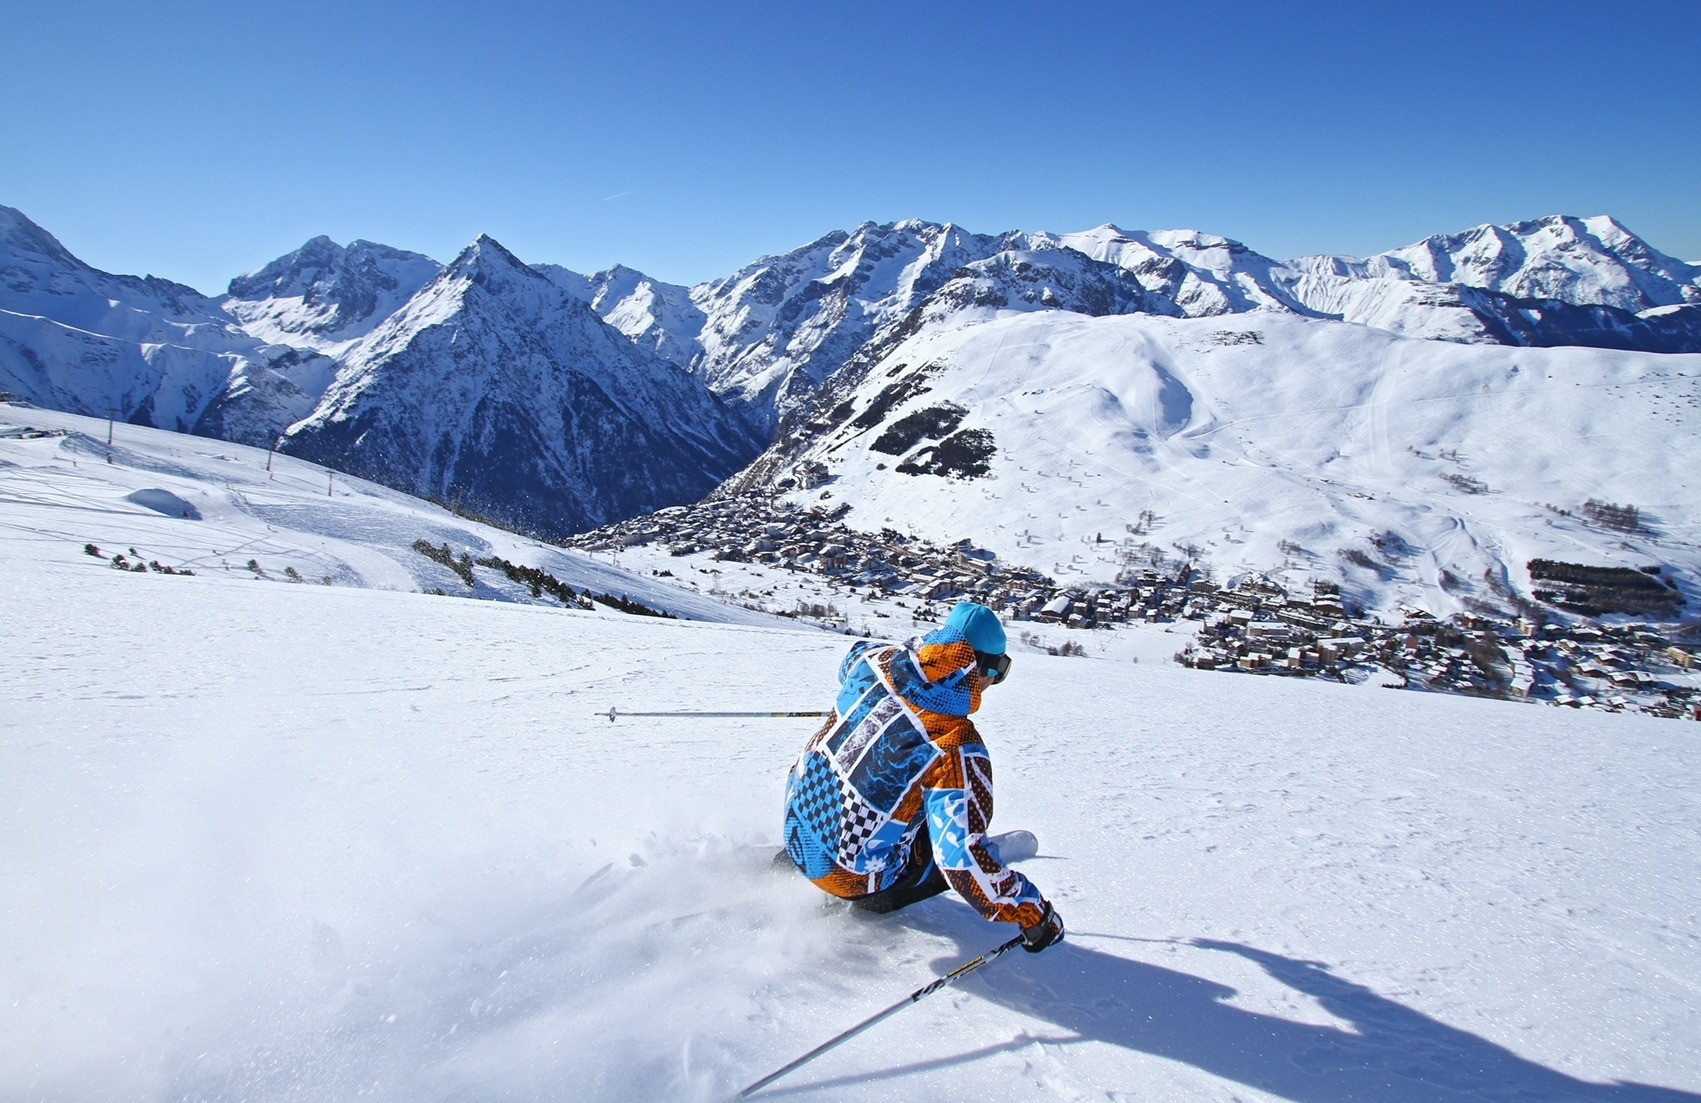 Lift Upgrades Coming to Les 2 Alpes Next Winter